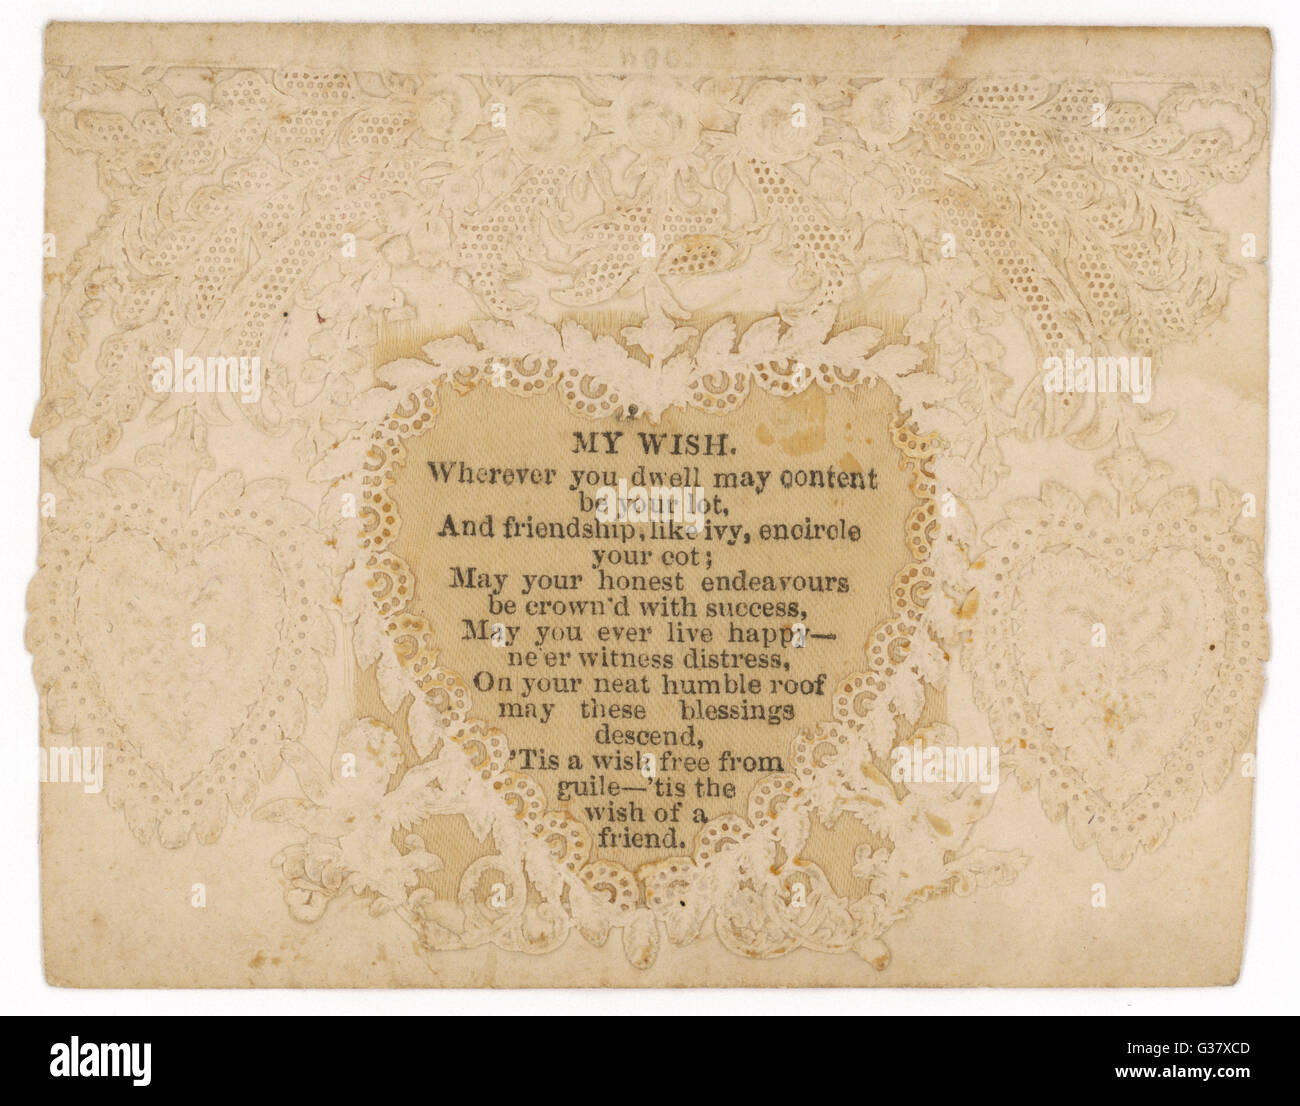 All-white card with heart  surrounded by 'lace' - and poem 'My Wish'        Date: circa 1860 - Stock Image